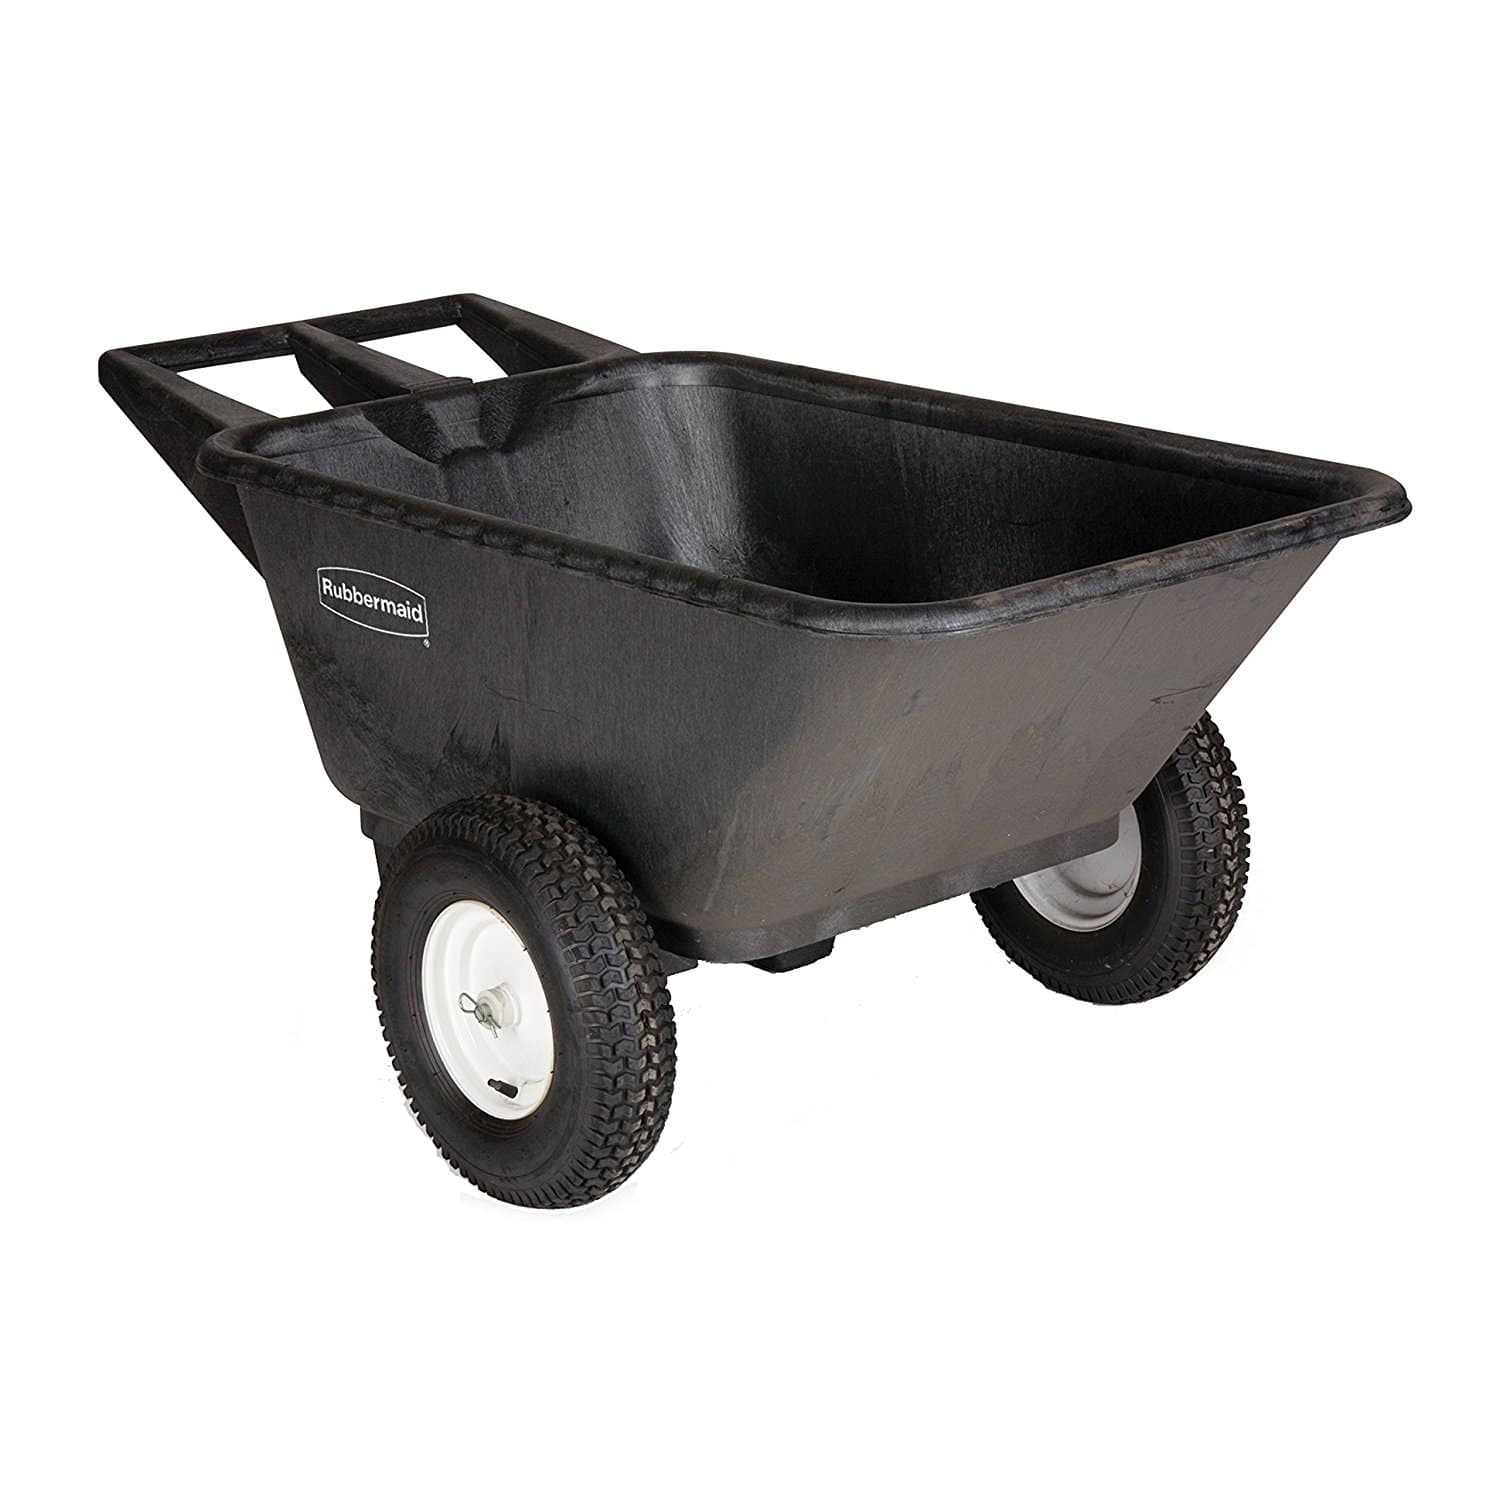 Rubbermaid Commercial Standard Low Wheel Cart Review